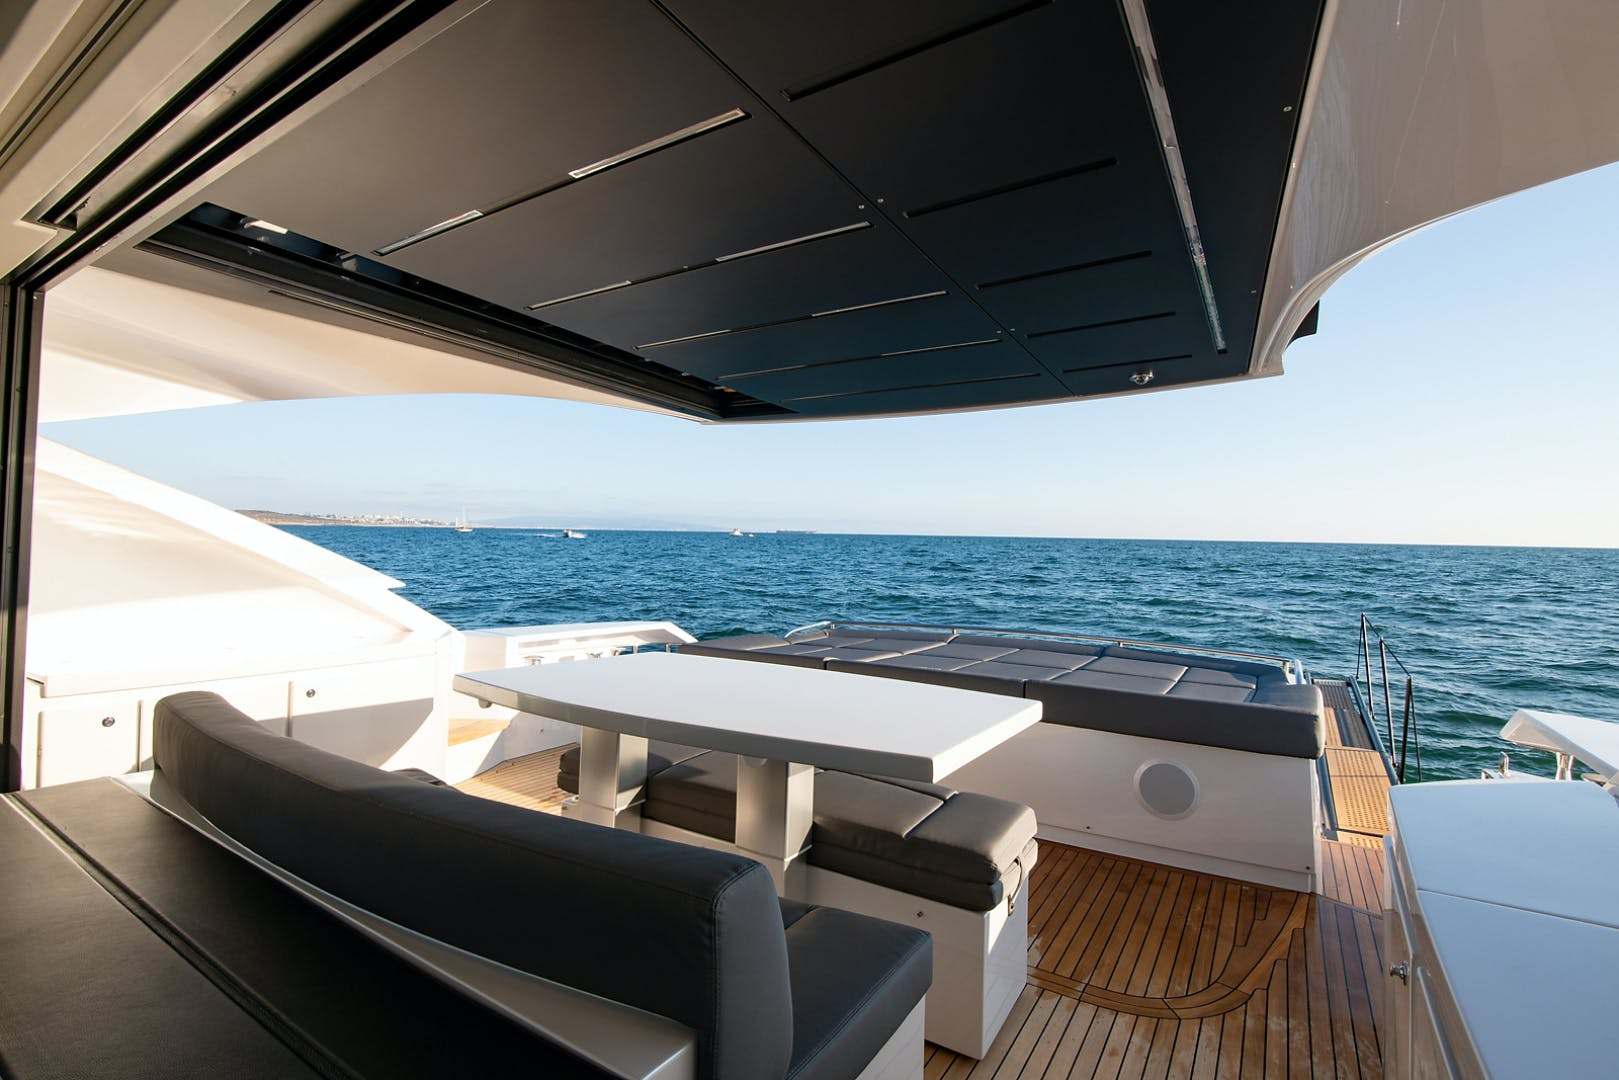 2017 Pershing 82' Pershing 82 Double or Nothing   Picture 5 of 41